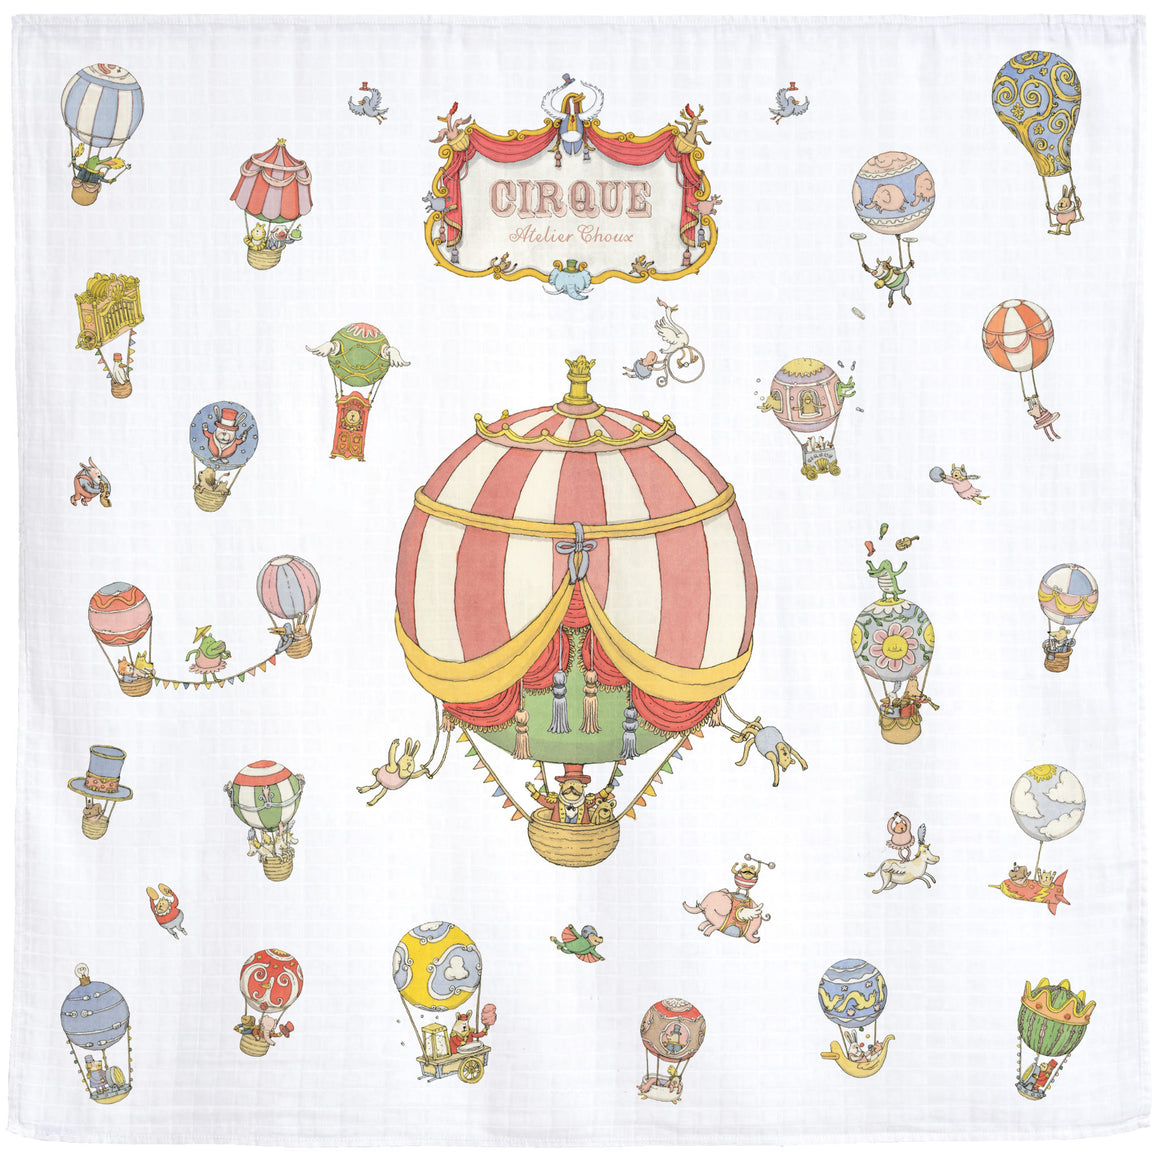 The Circus Baby Wrap by Atelier Choux